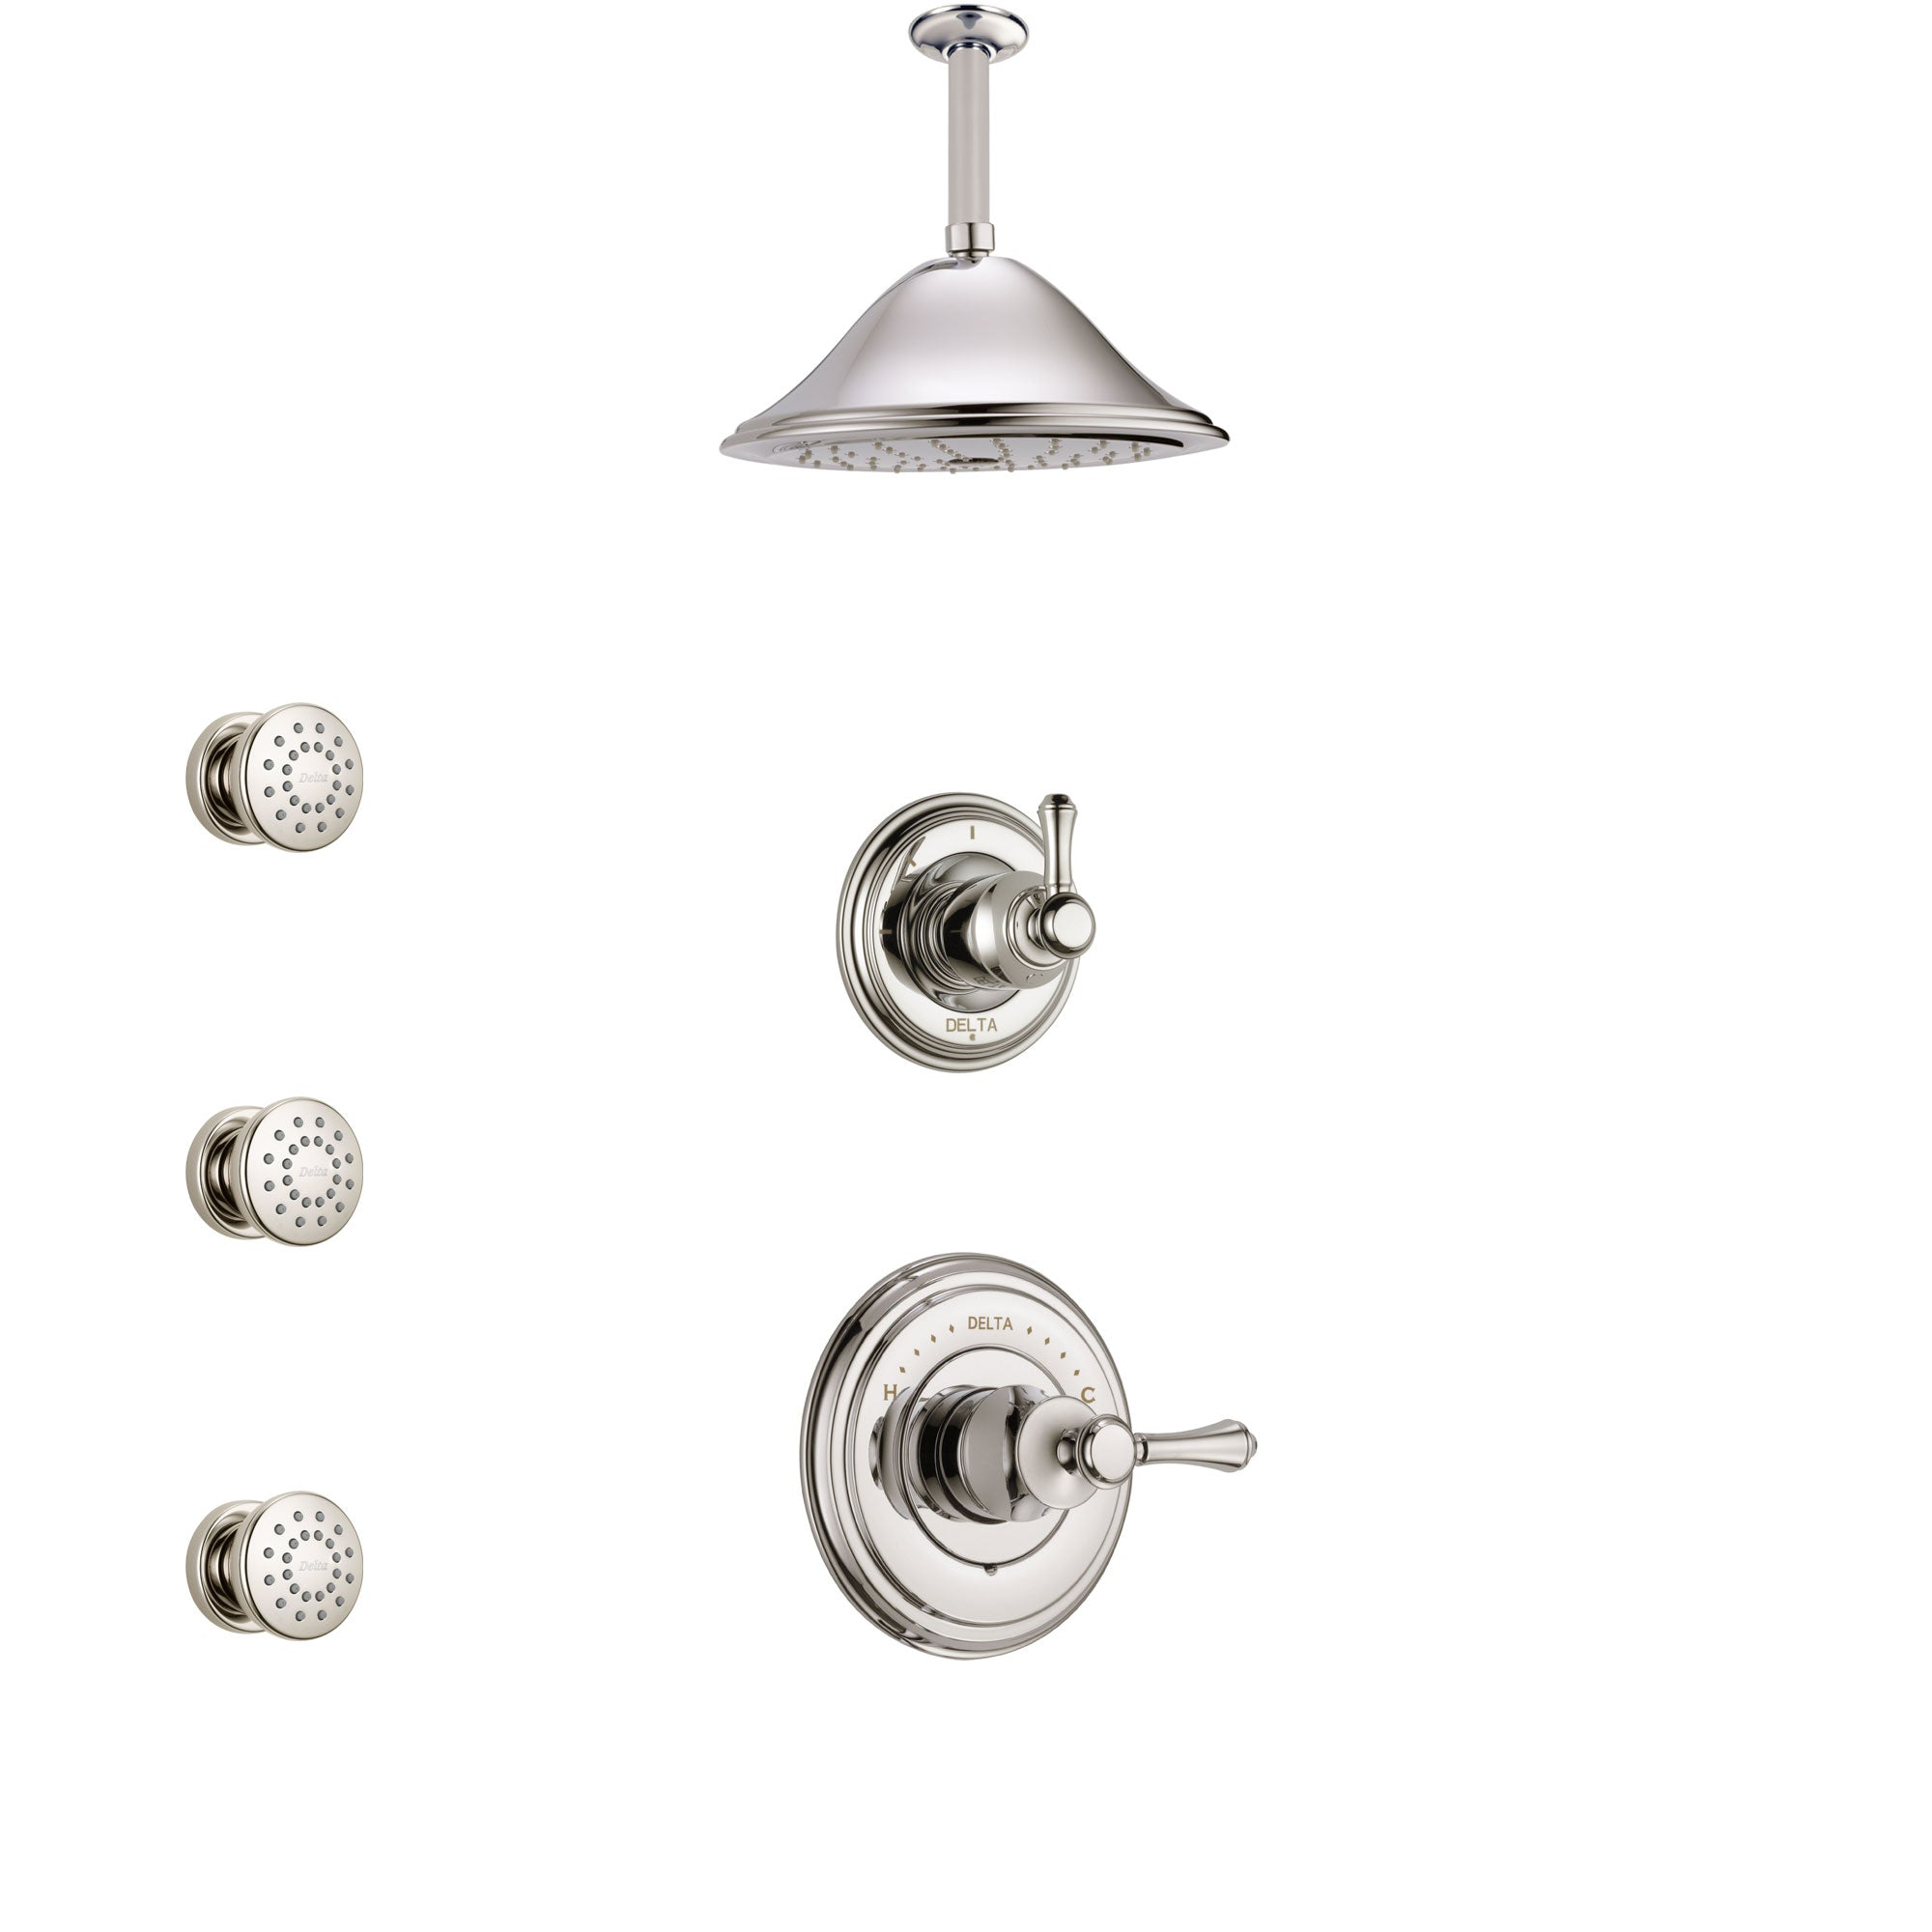 Delta Cassidy Polished Nickel Finish Shower System with Control Handle, 3-Setting Diverter, Ceiling Mount Showerhead, and 3 Body Sprays SS14972PN4